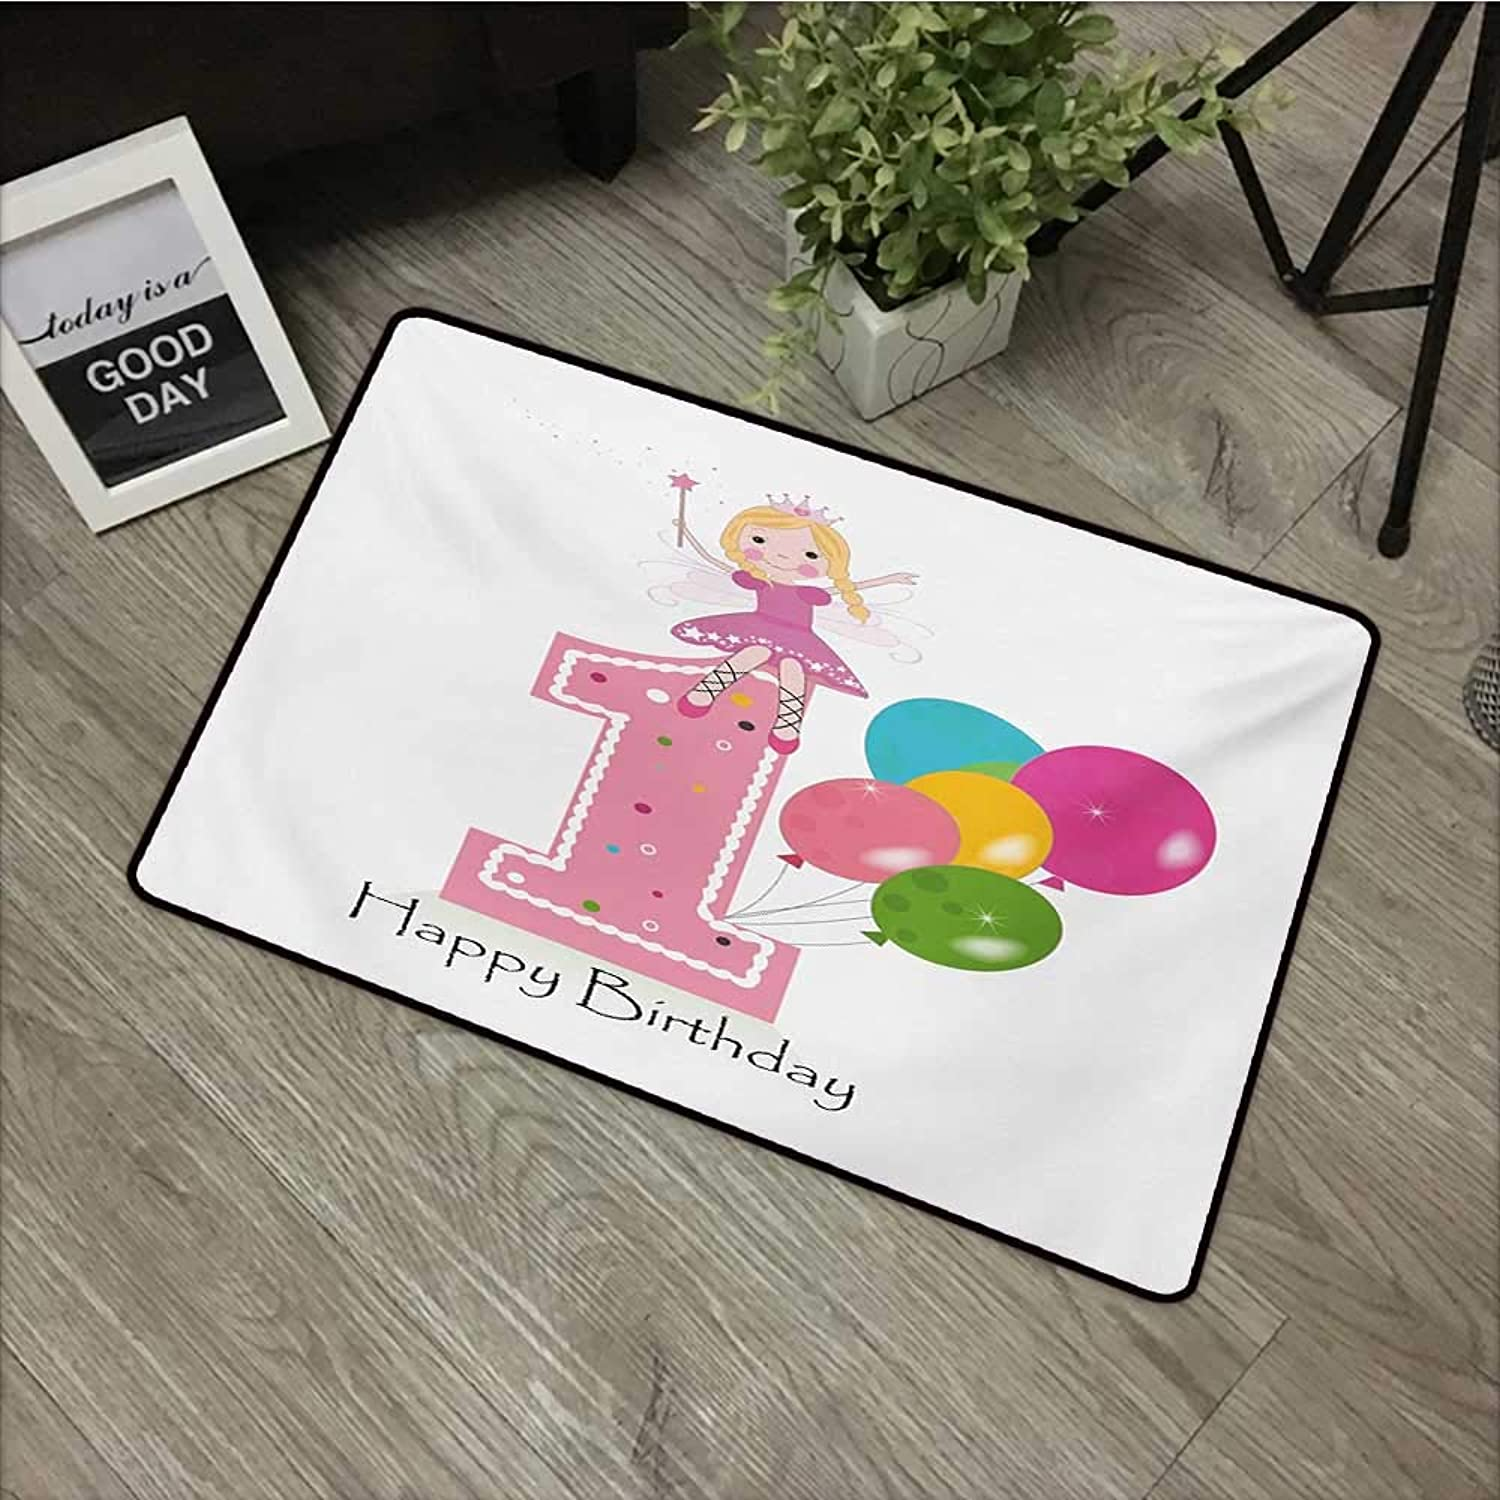 Pool Anti-Slip Door mat W35 x L47 INCH 1st Birthday,Princess Fairy Party Theme with Best Wishes Pink Wand and Balloons,Pale Pink and purplec Non-Slip Door Mat Carpet